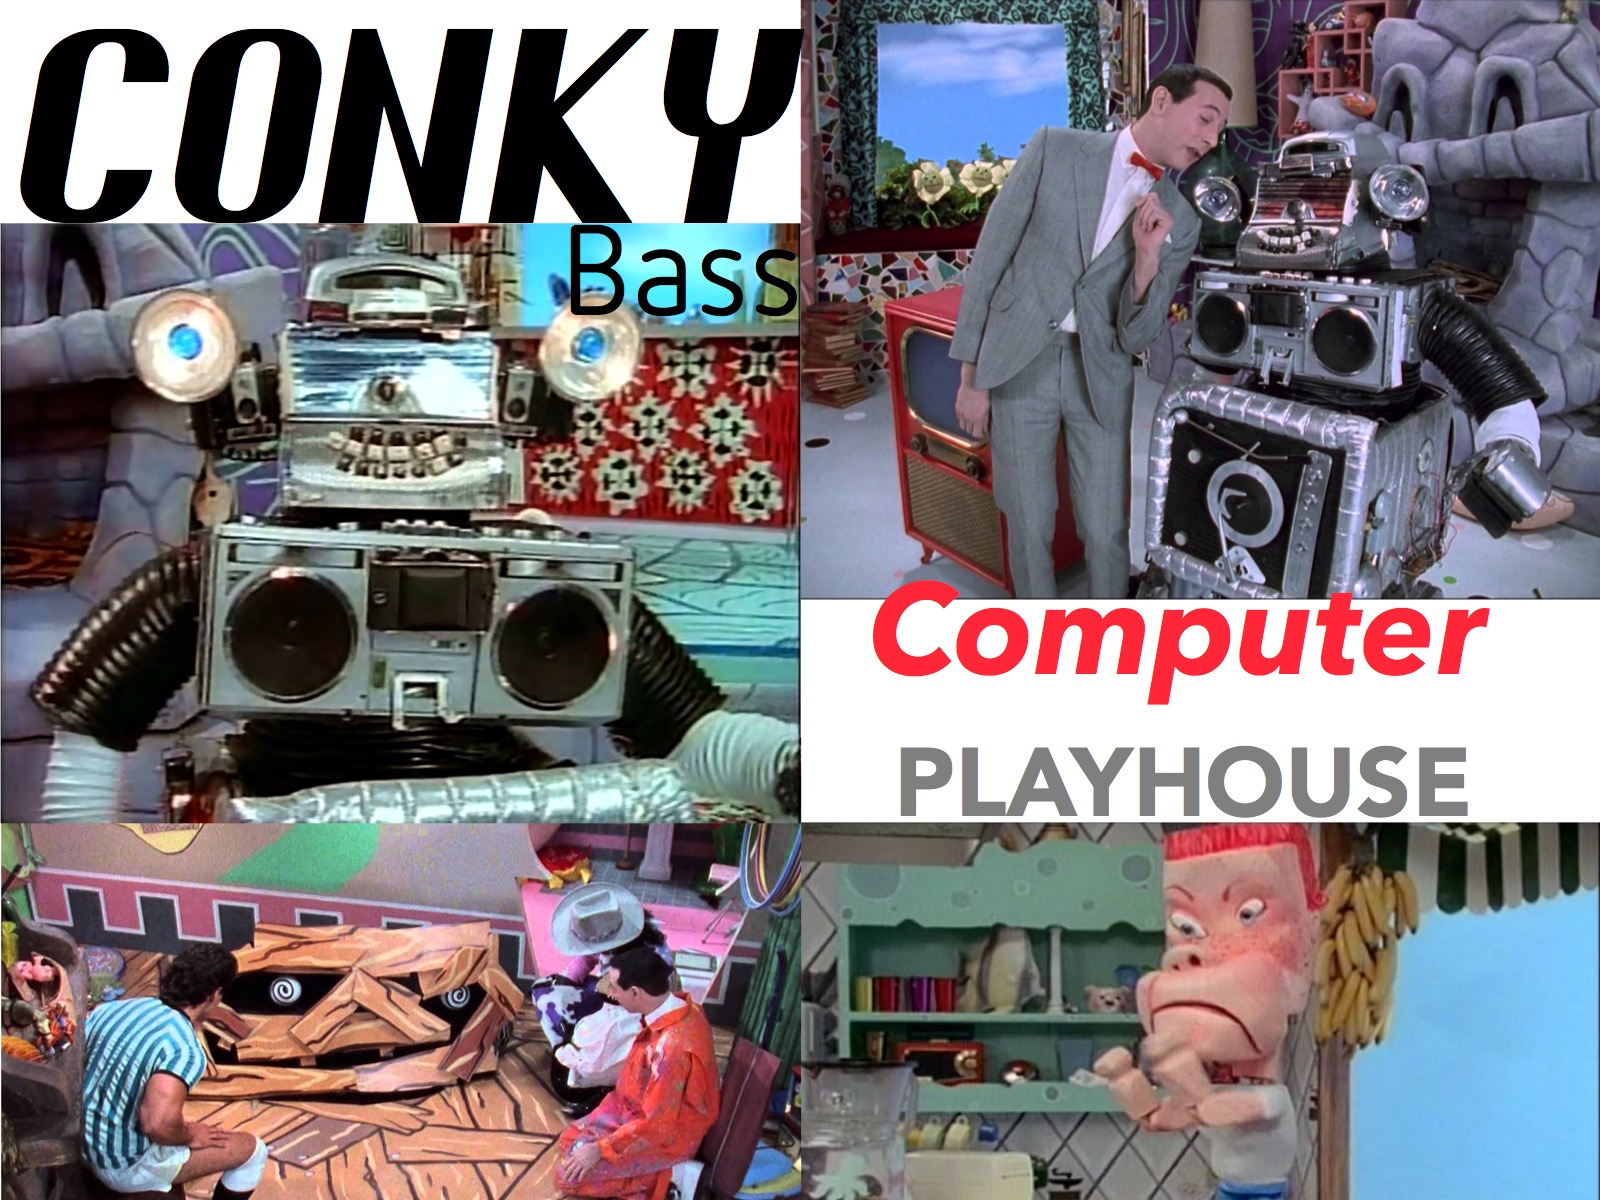 CONKY BASS ROBOT EDM ADVENTURES IN IBIZA SPACE AKB LEADER EPISODE MARS E.T ZERO DNB BREAKCORE DRUM & BASS NINJA MAN REAKTOR LEGEND AUDIO SOUND DESIGN